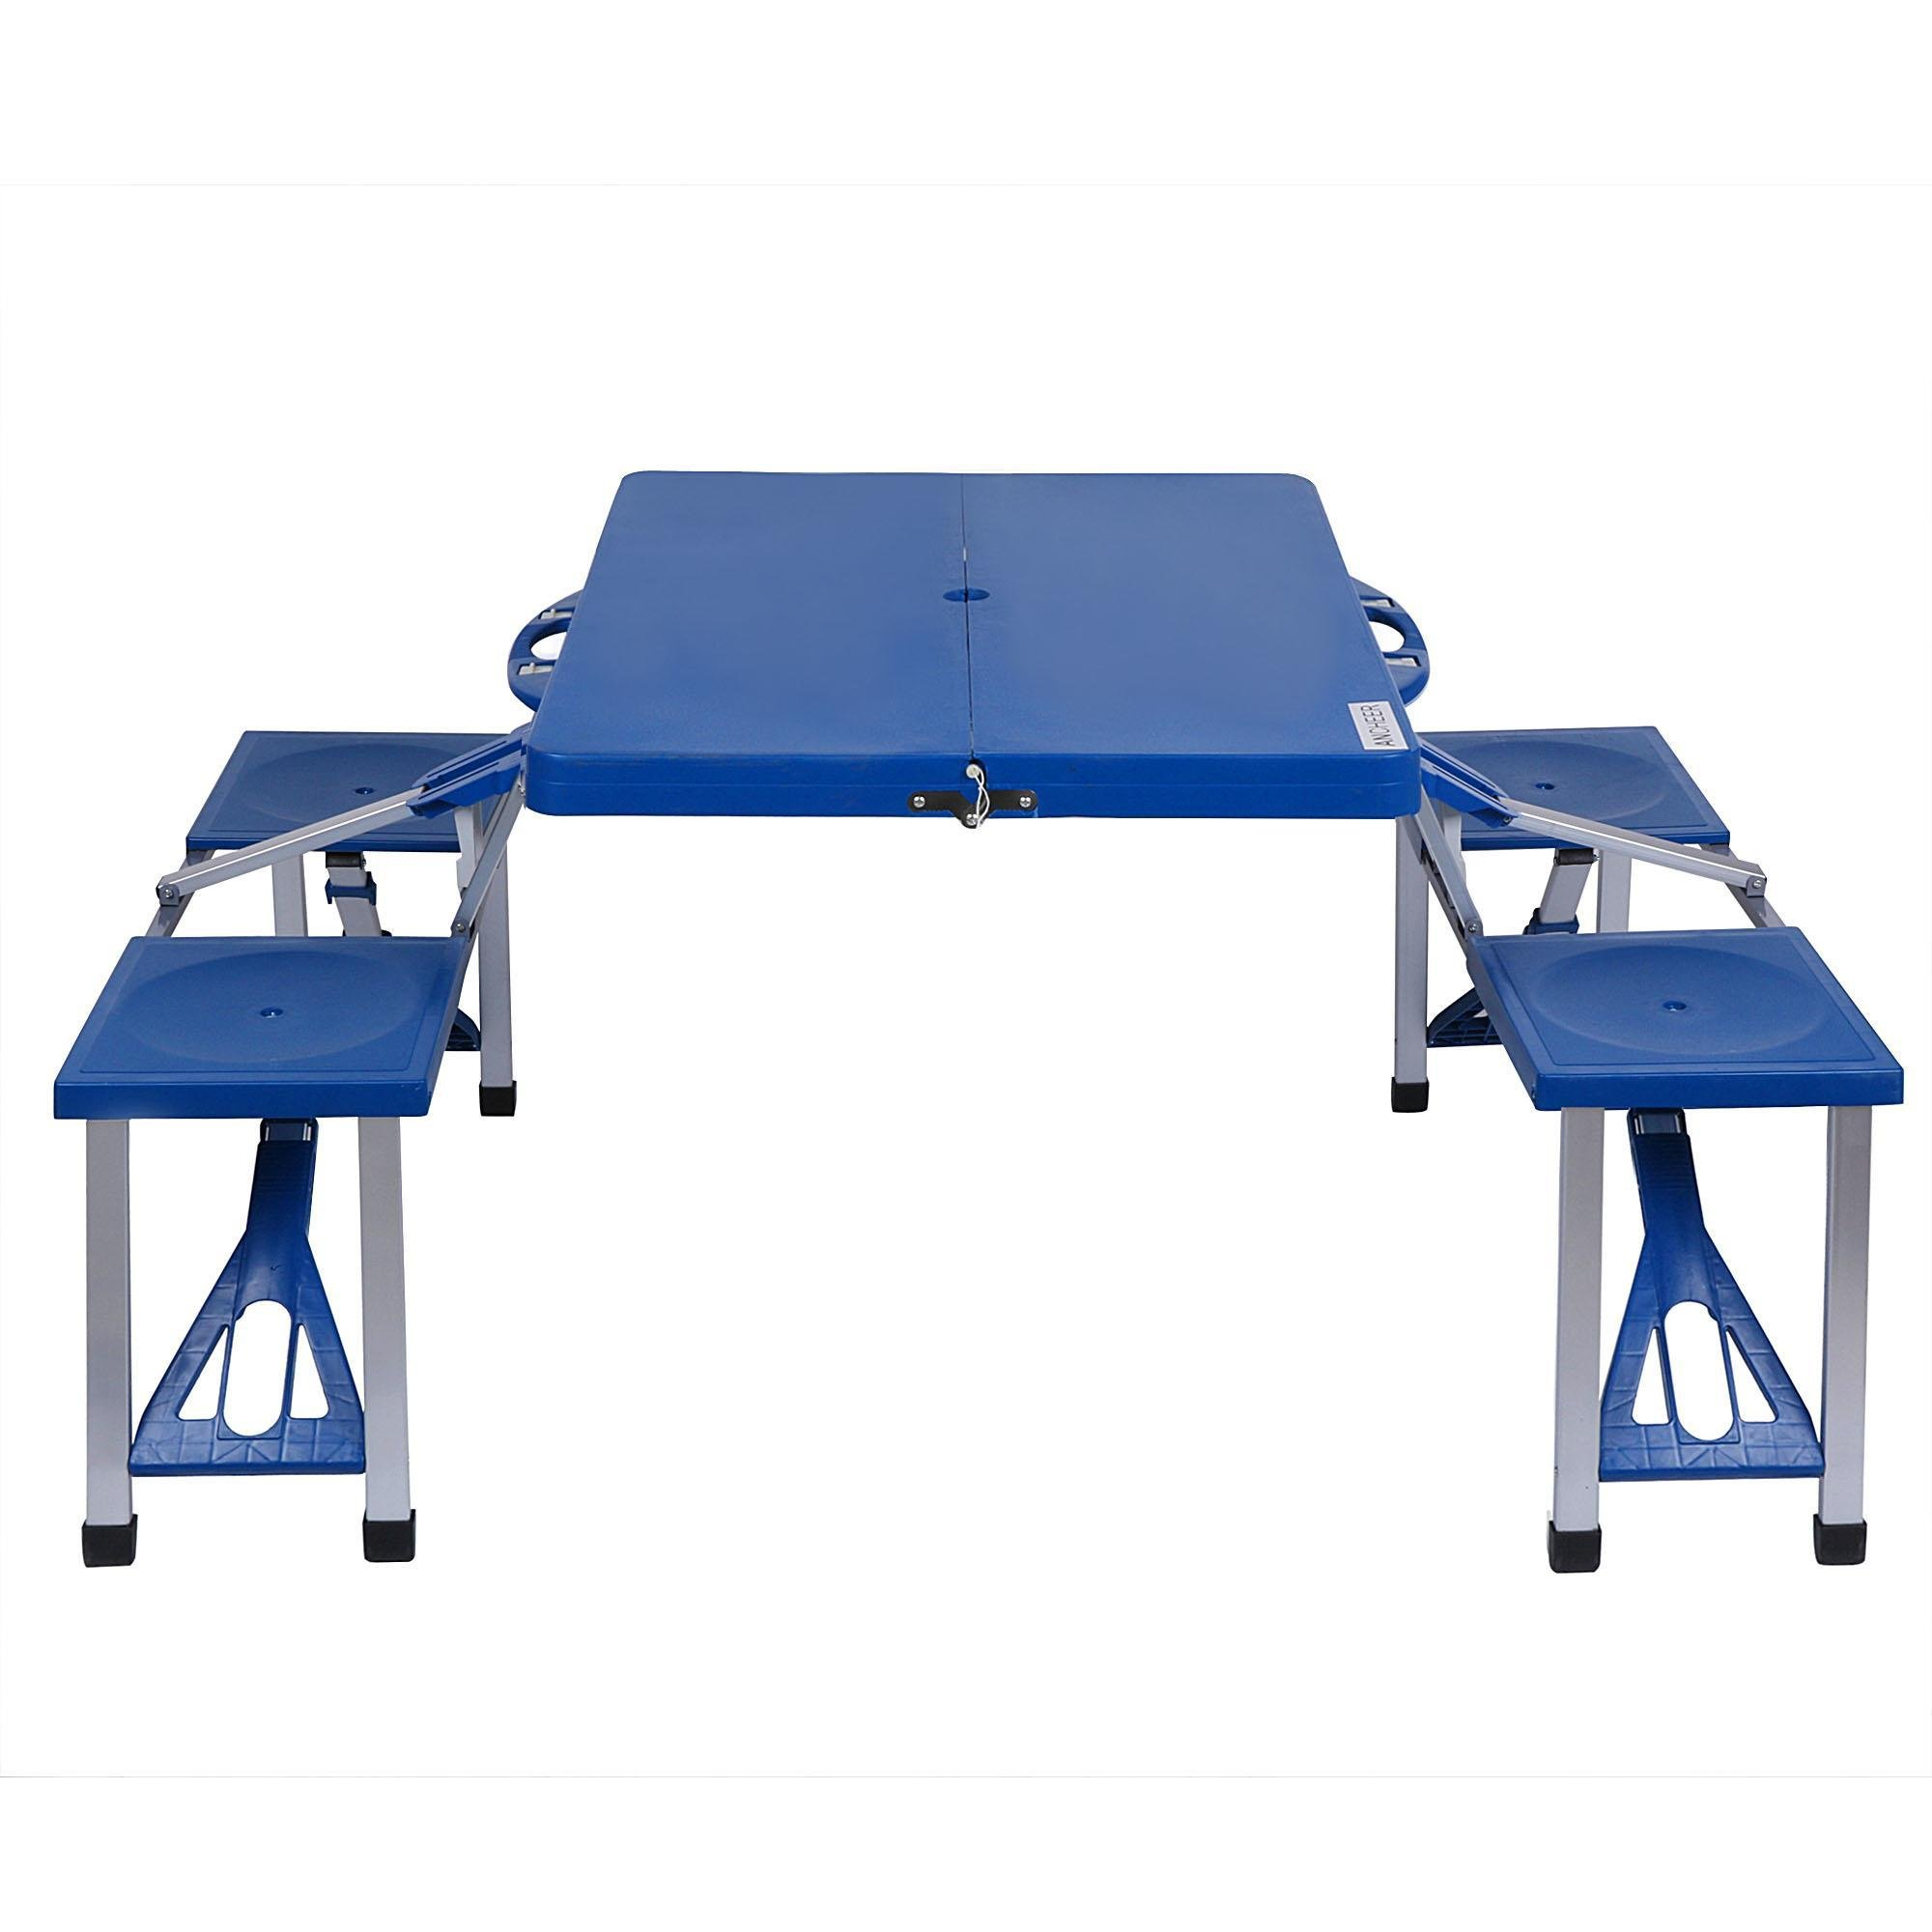 Hindom Kids Collapsible Portable Outdoor Plastic Camp Suitcase Picnic Table With 4 Seats,Folding Table and Benches for Garden Yard,Camping BBQ,Hiking,Blue(US Stock)